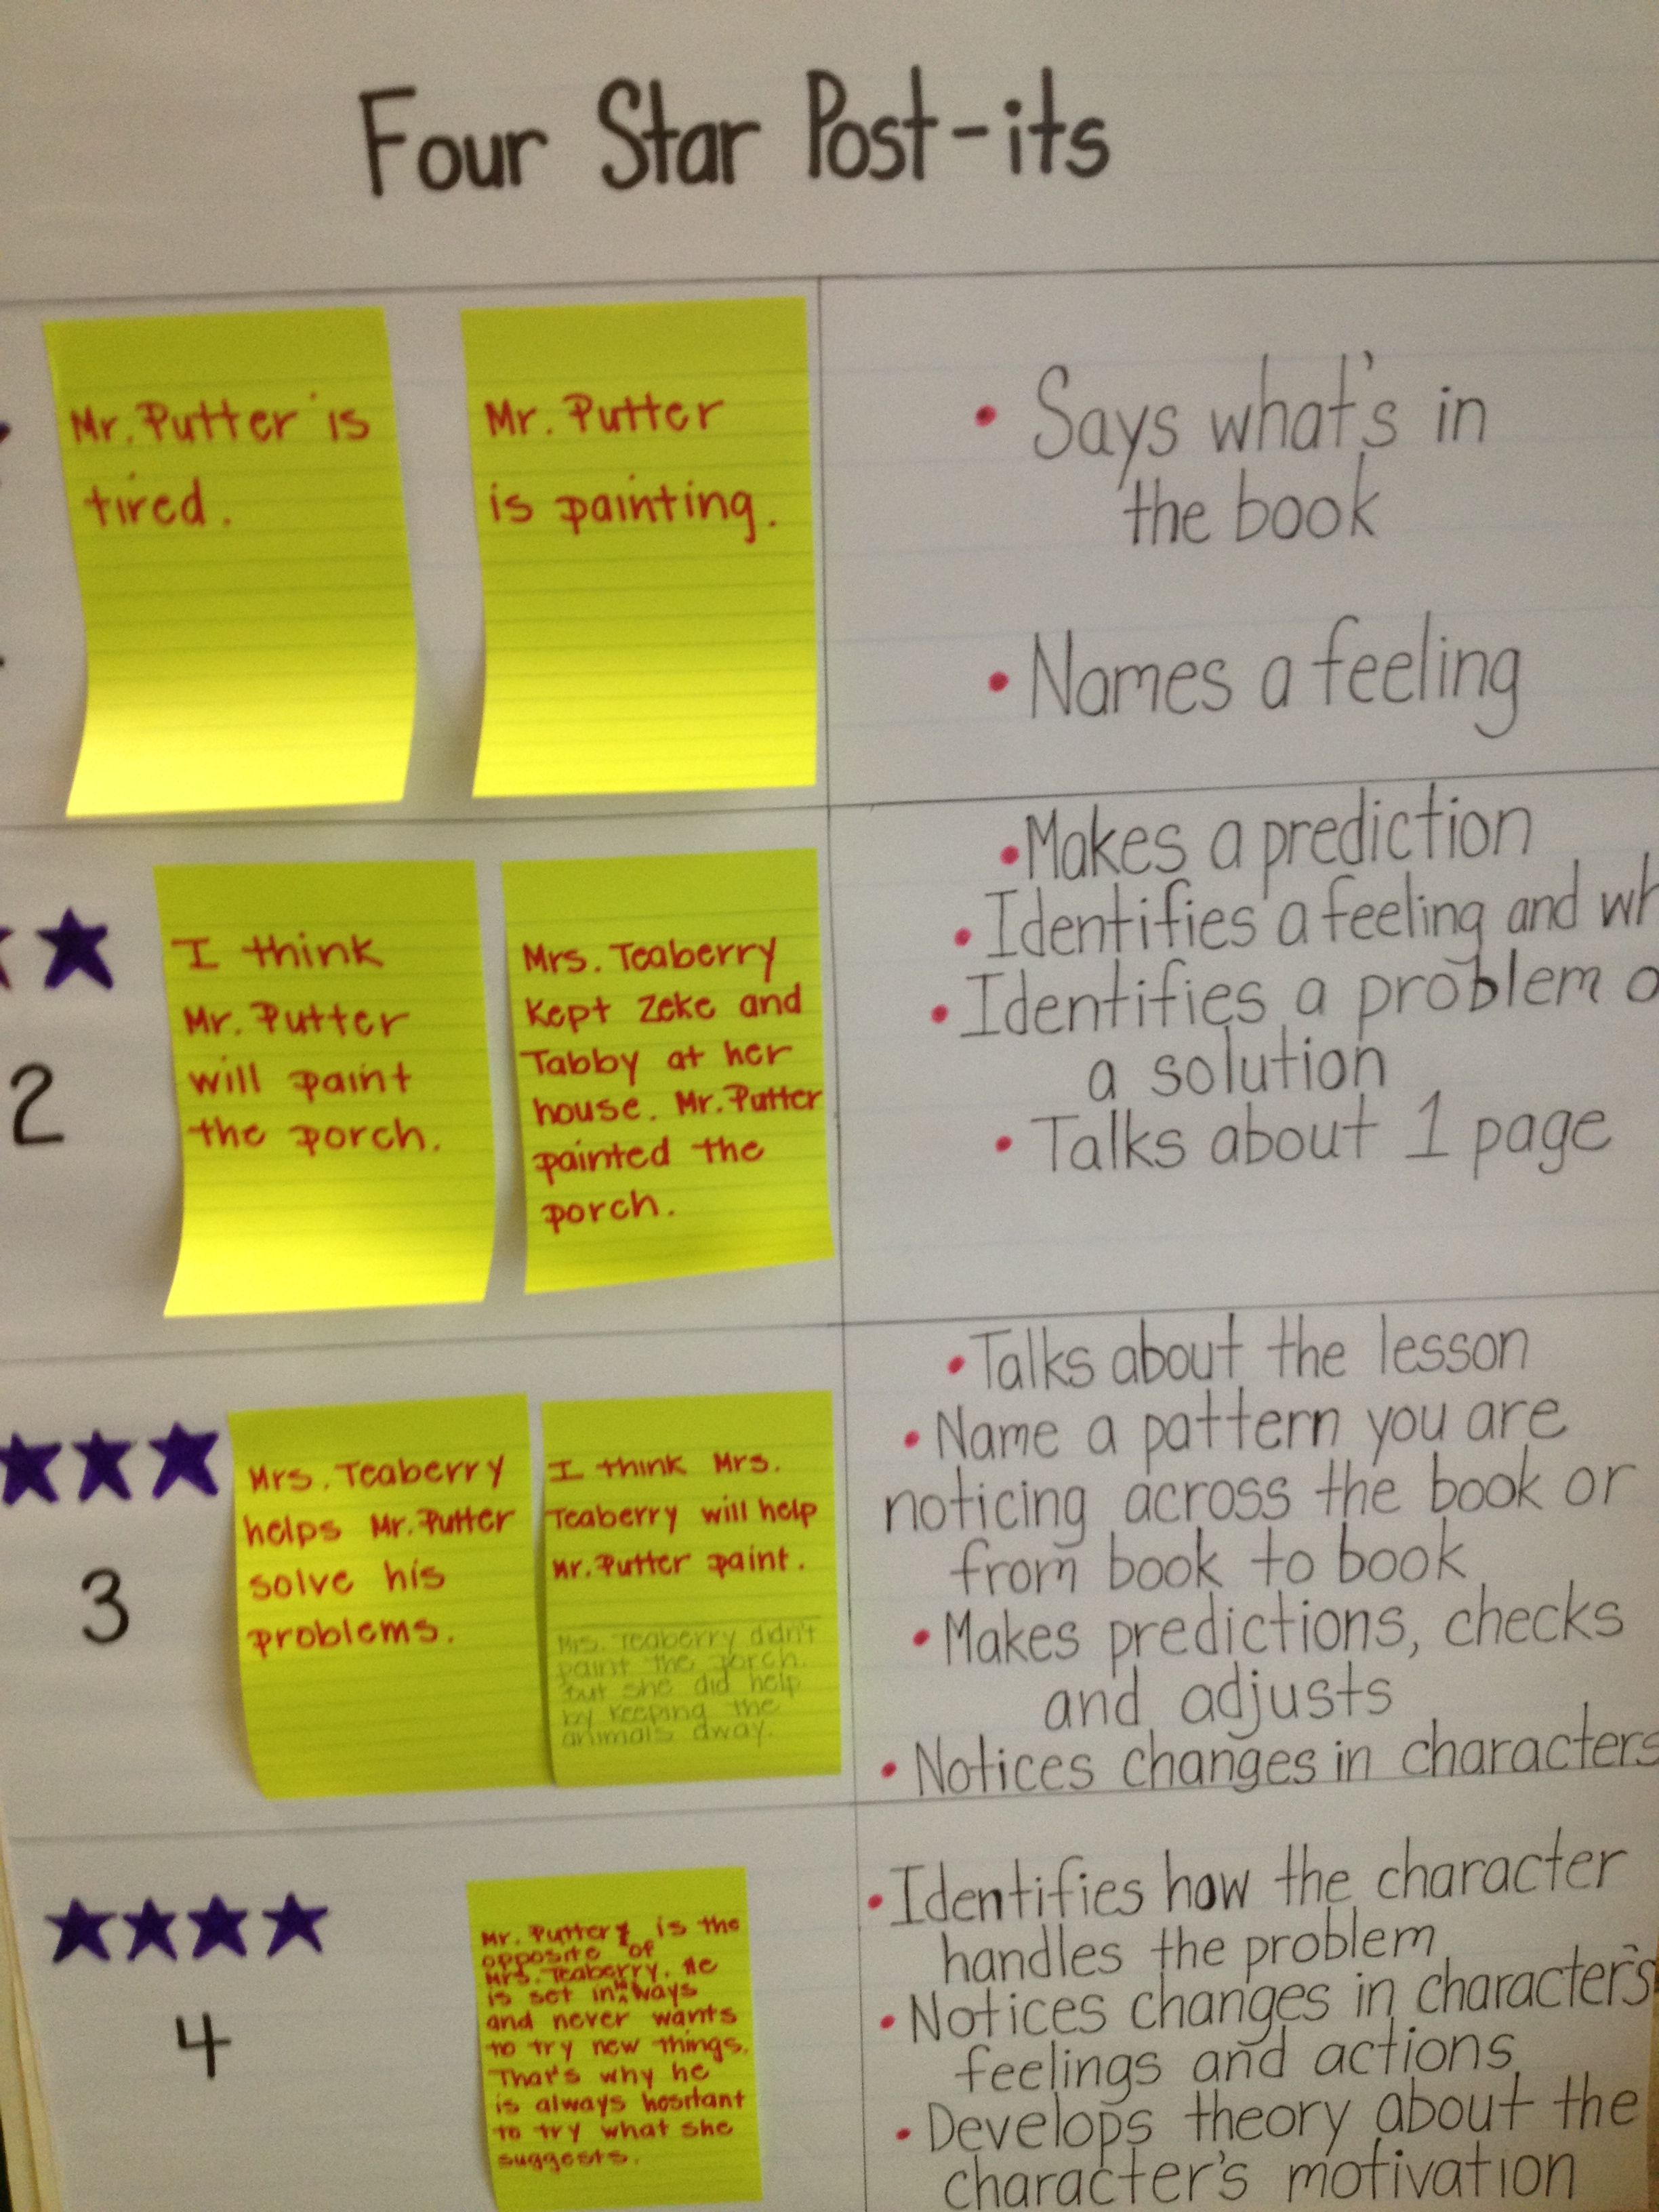 Oh My! More Ideas About Goals, Rubrics, and Groups ...